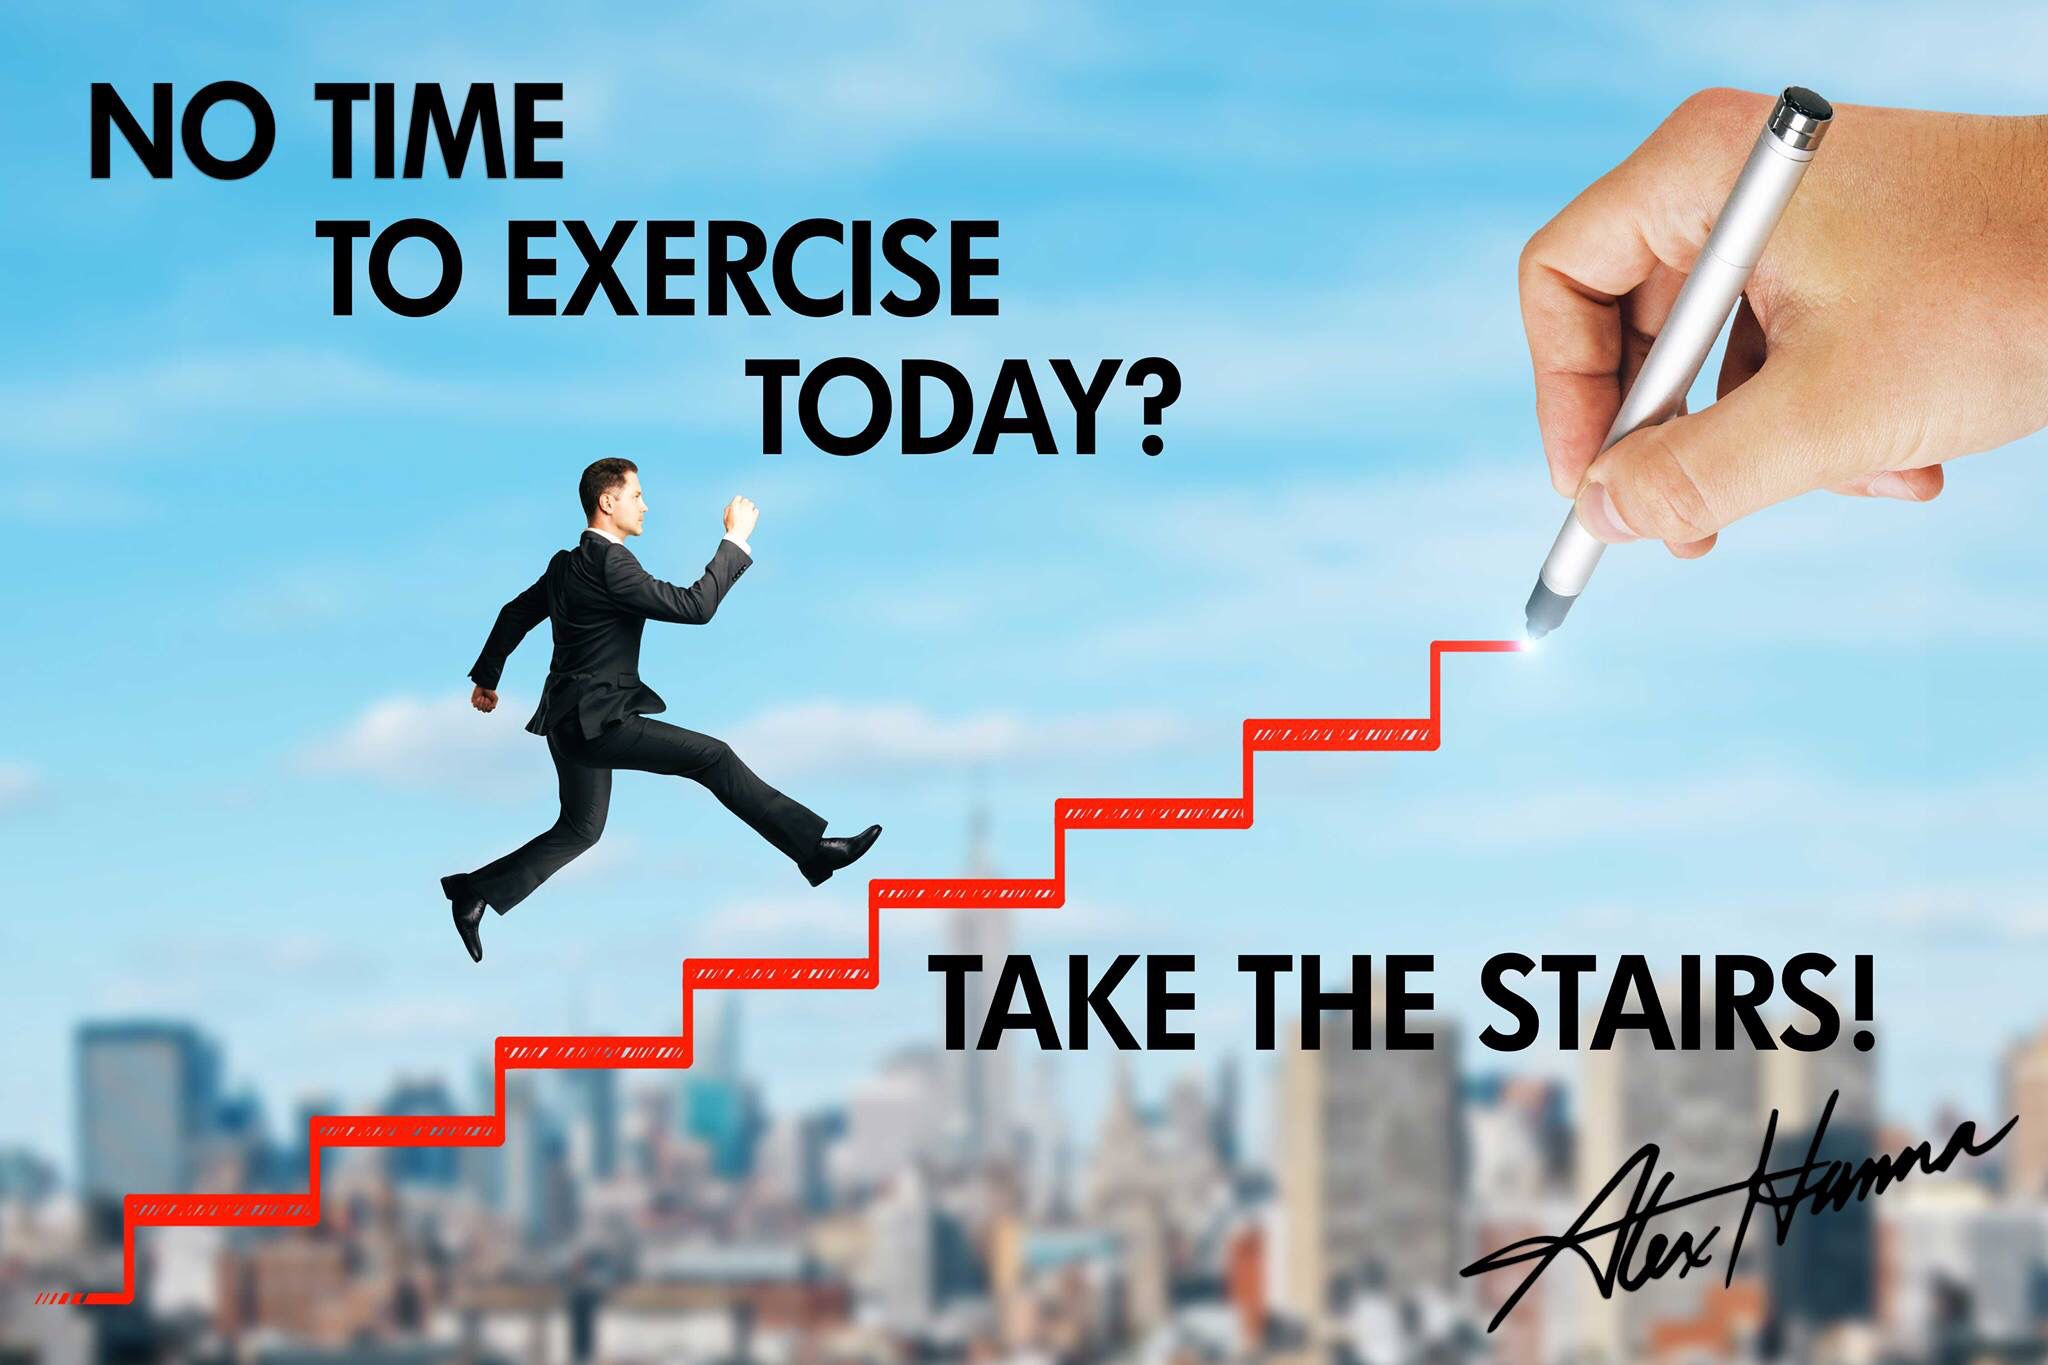 Good Morning! Today is National Take the Stairs Day! This